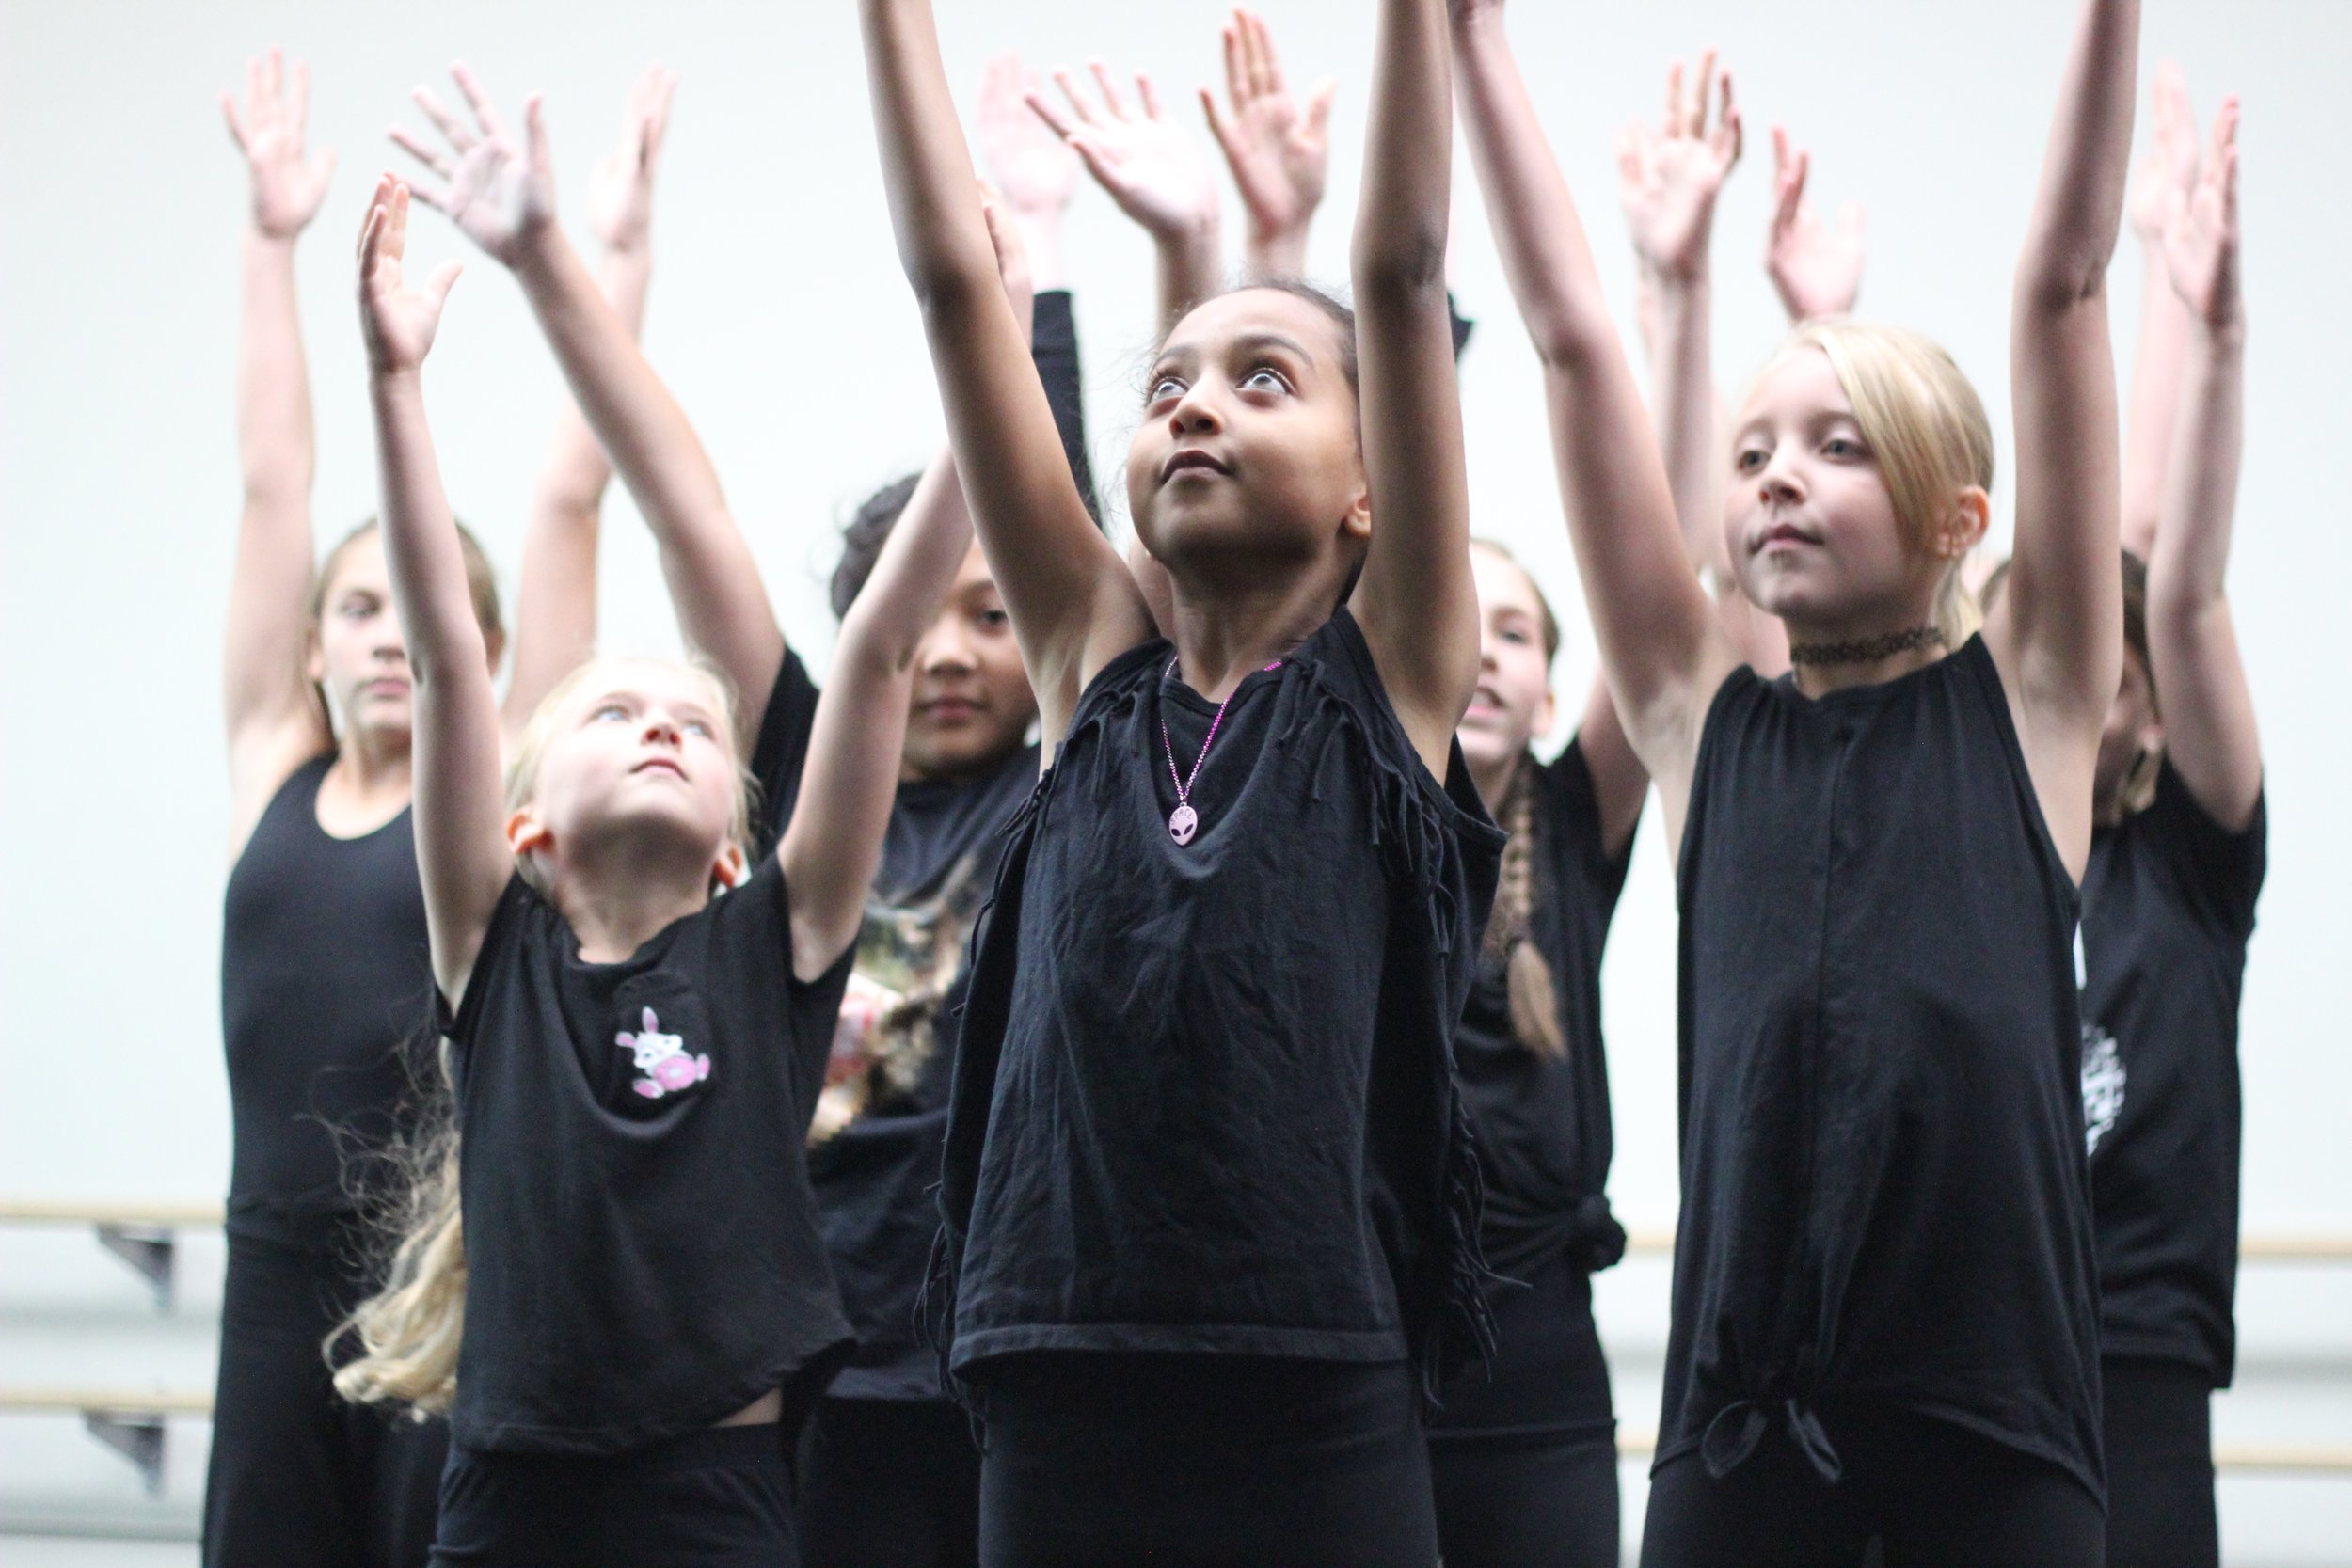 summer camp students with hands raised